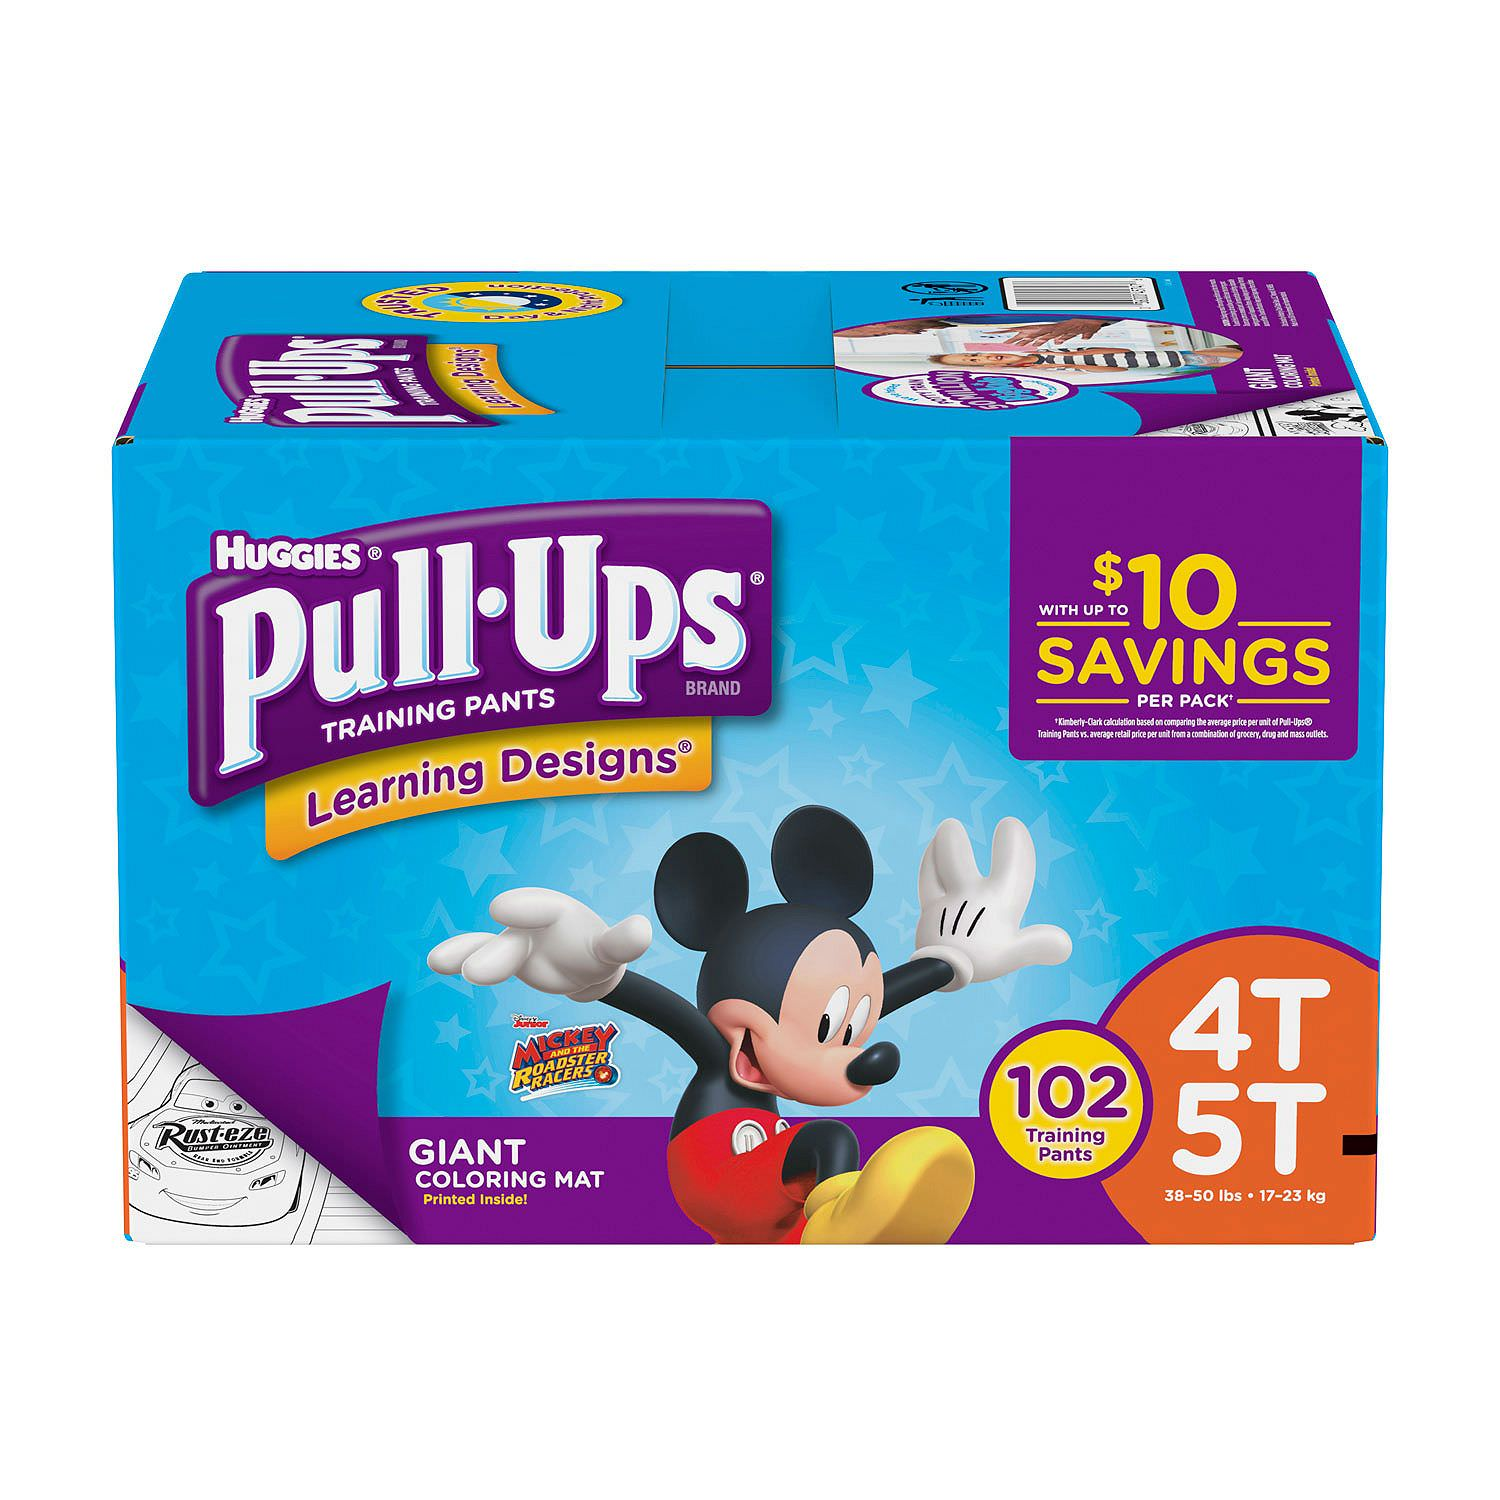 Huggies Pull-ups Training Pants for Boys Size 4T-5T (102 count)